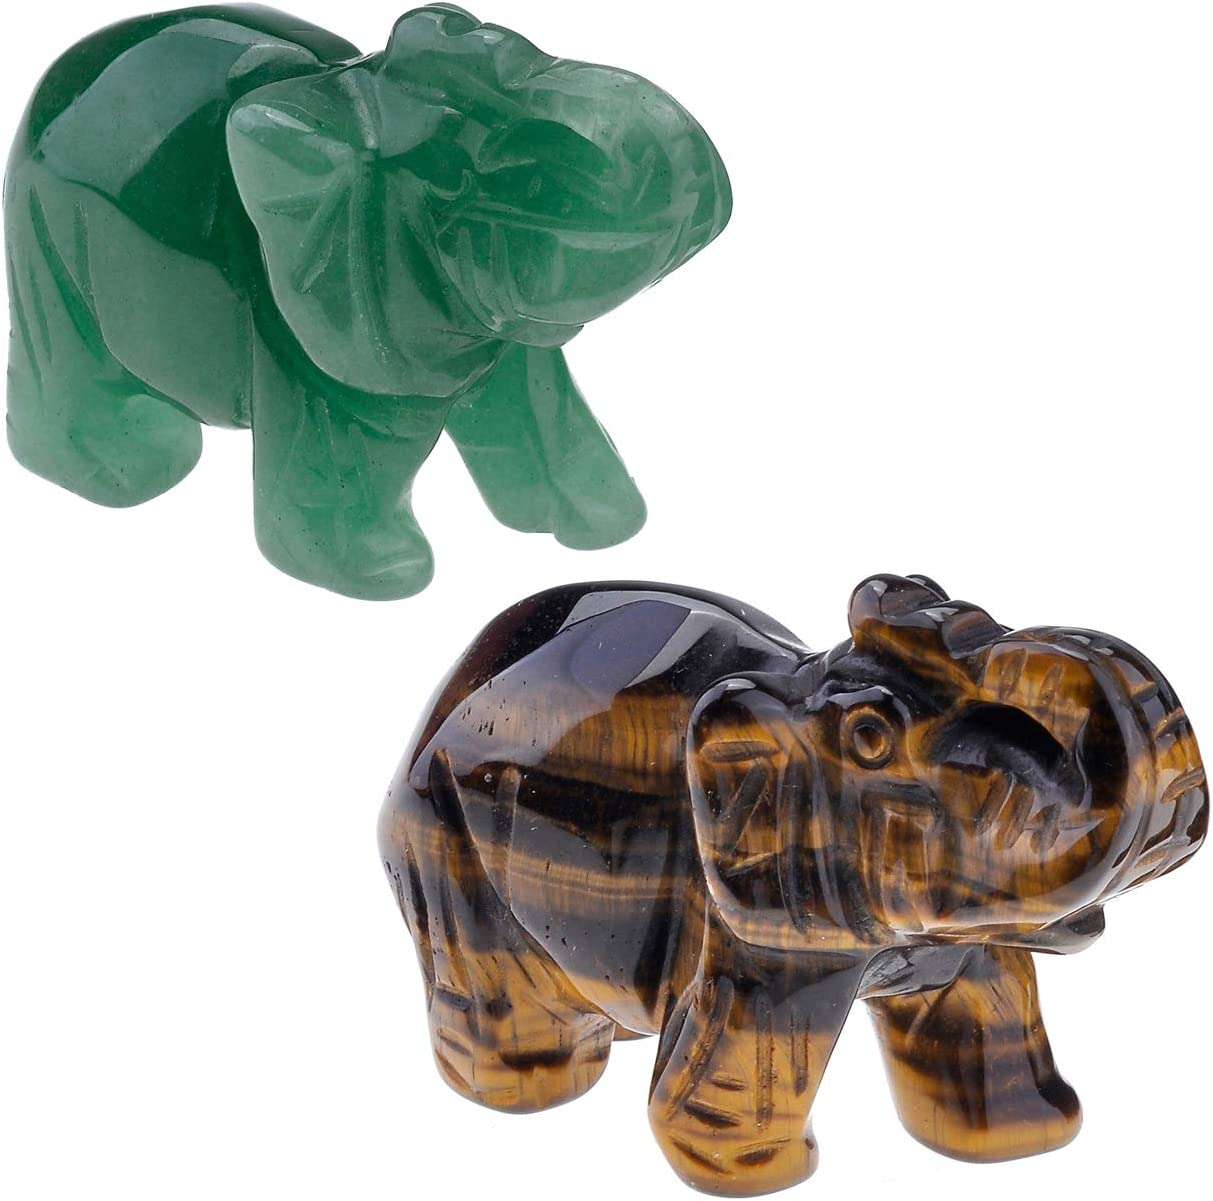 Top Plaza 2pcs Healing Crystal Stones Tiger Eye Stone & Green Aventurine Elephant Figurines Reiki Gemstone Crafts Statues Elephant Gifts Collectible Decor for Home Office Desk 1.5 inches